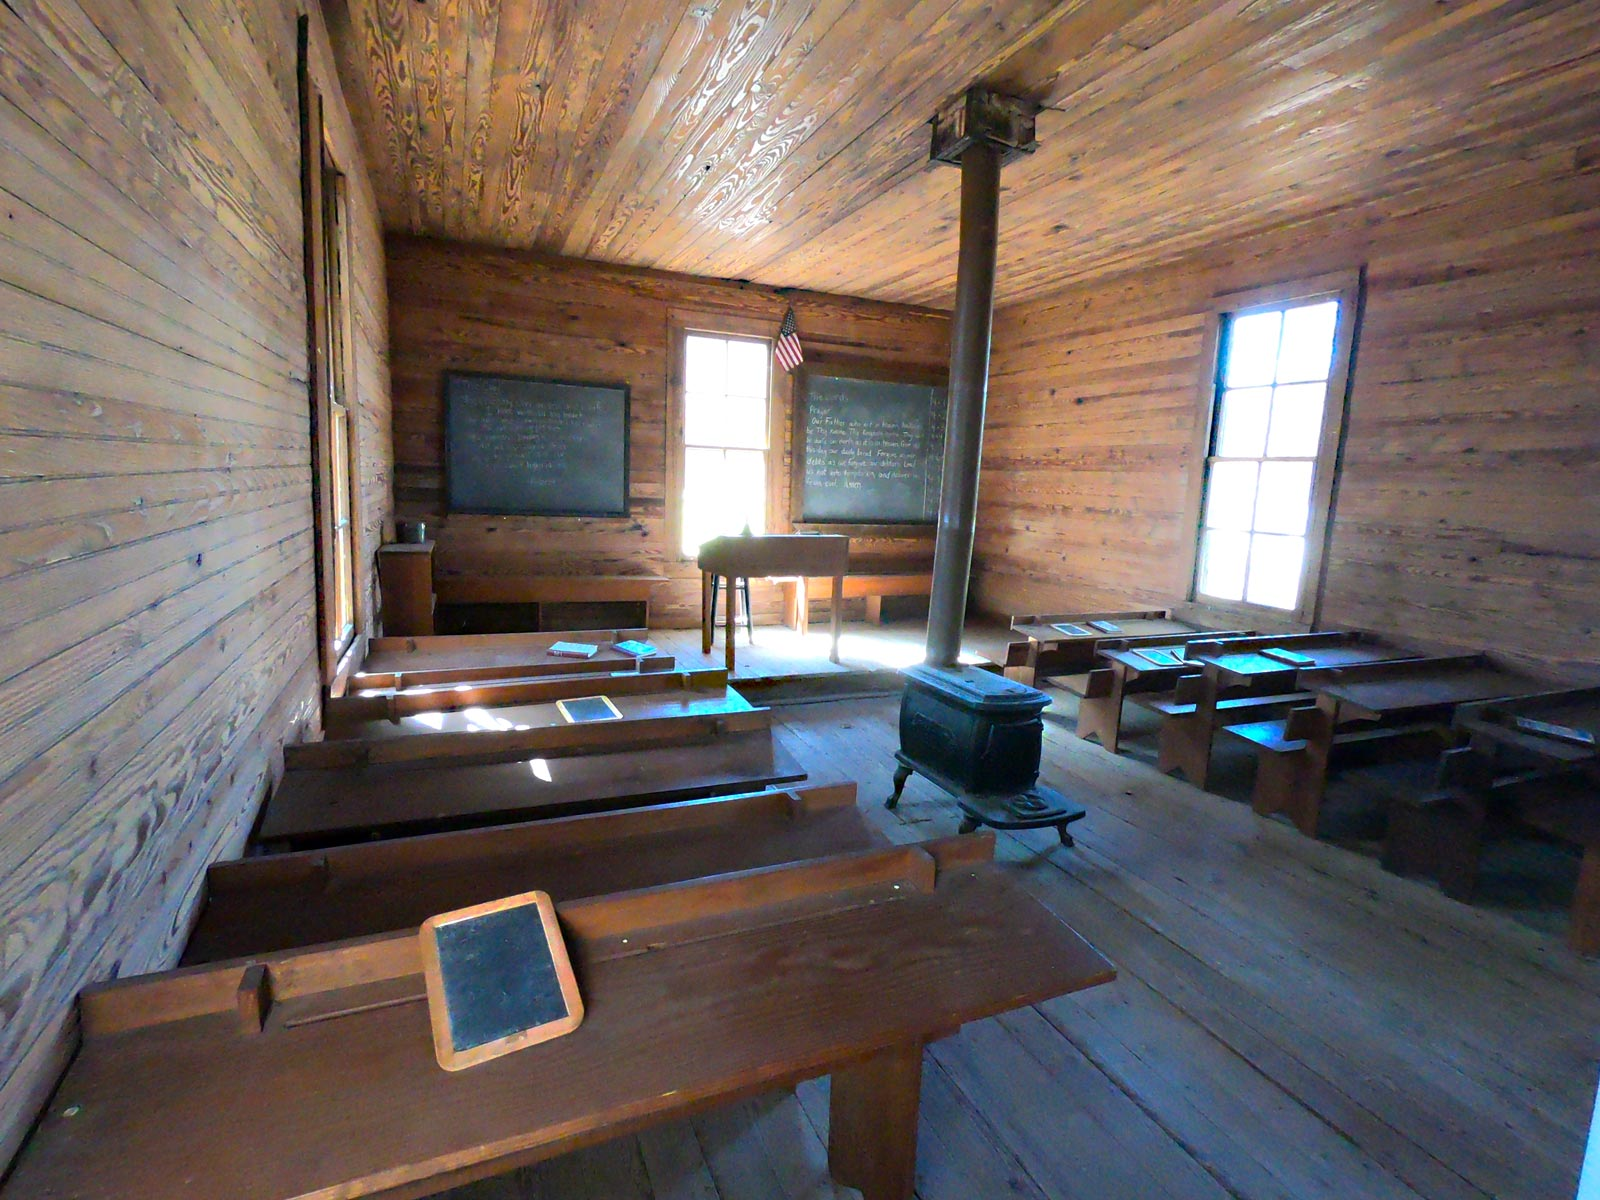 Interior of one-room school house at the Tobacco Farm Life Museum, Kenly, North Carolina